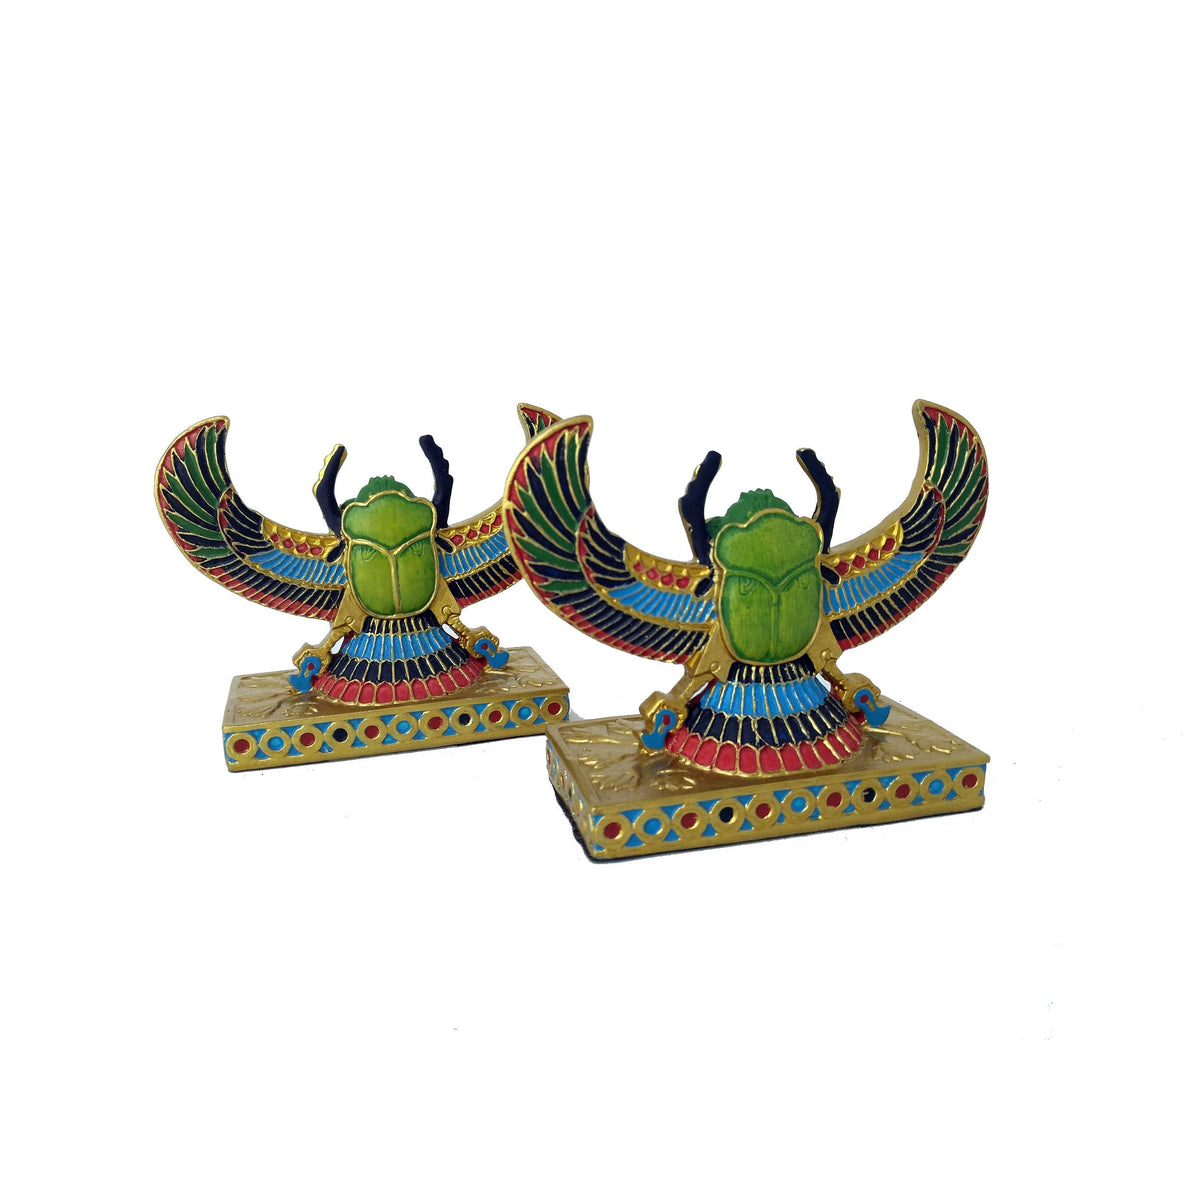 Winged Scarab Beetle Statue